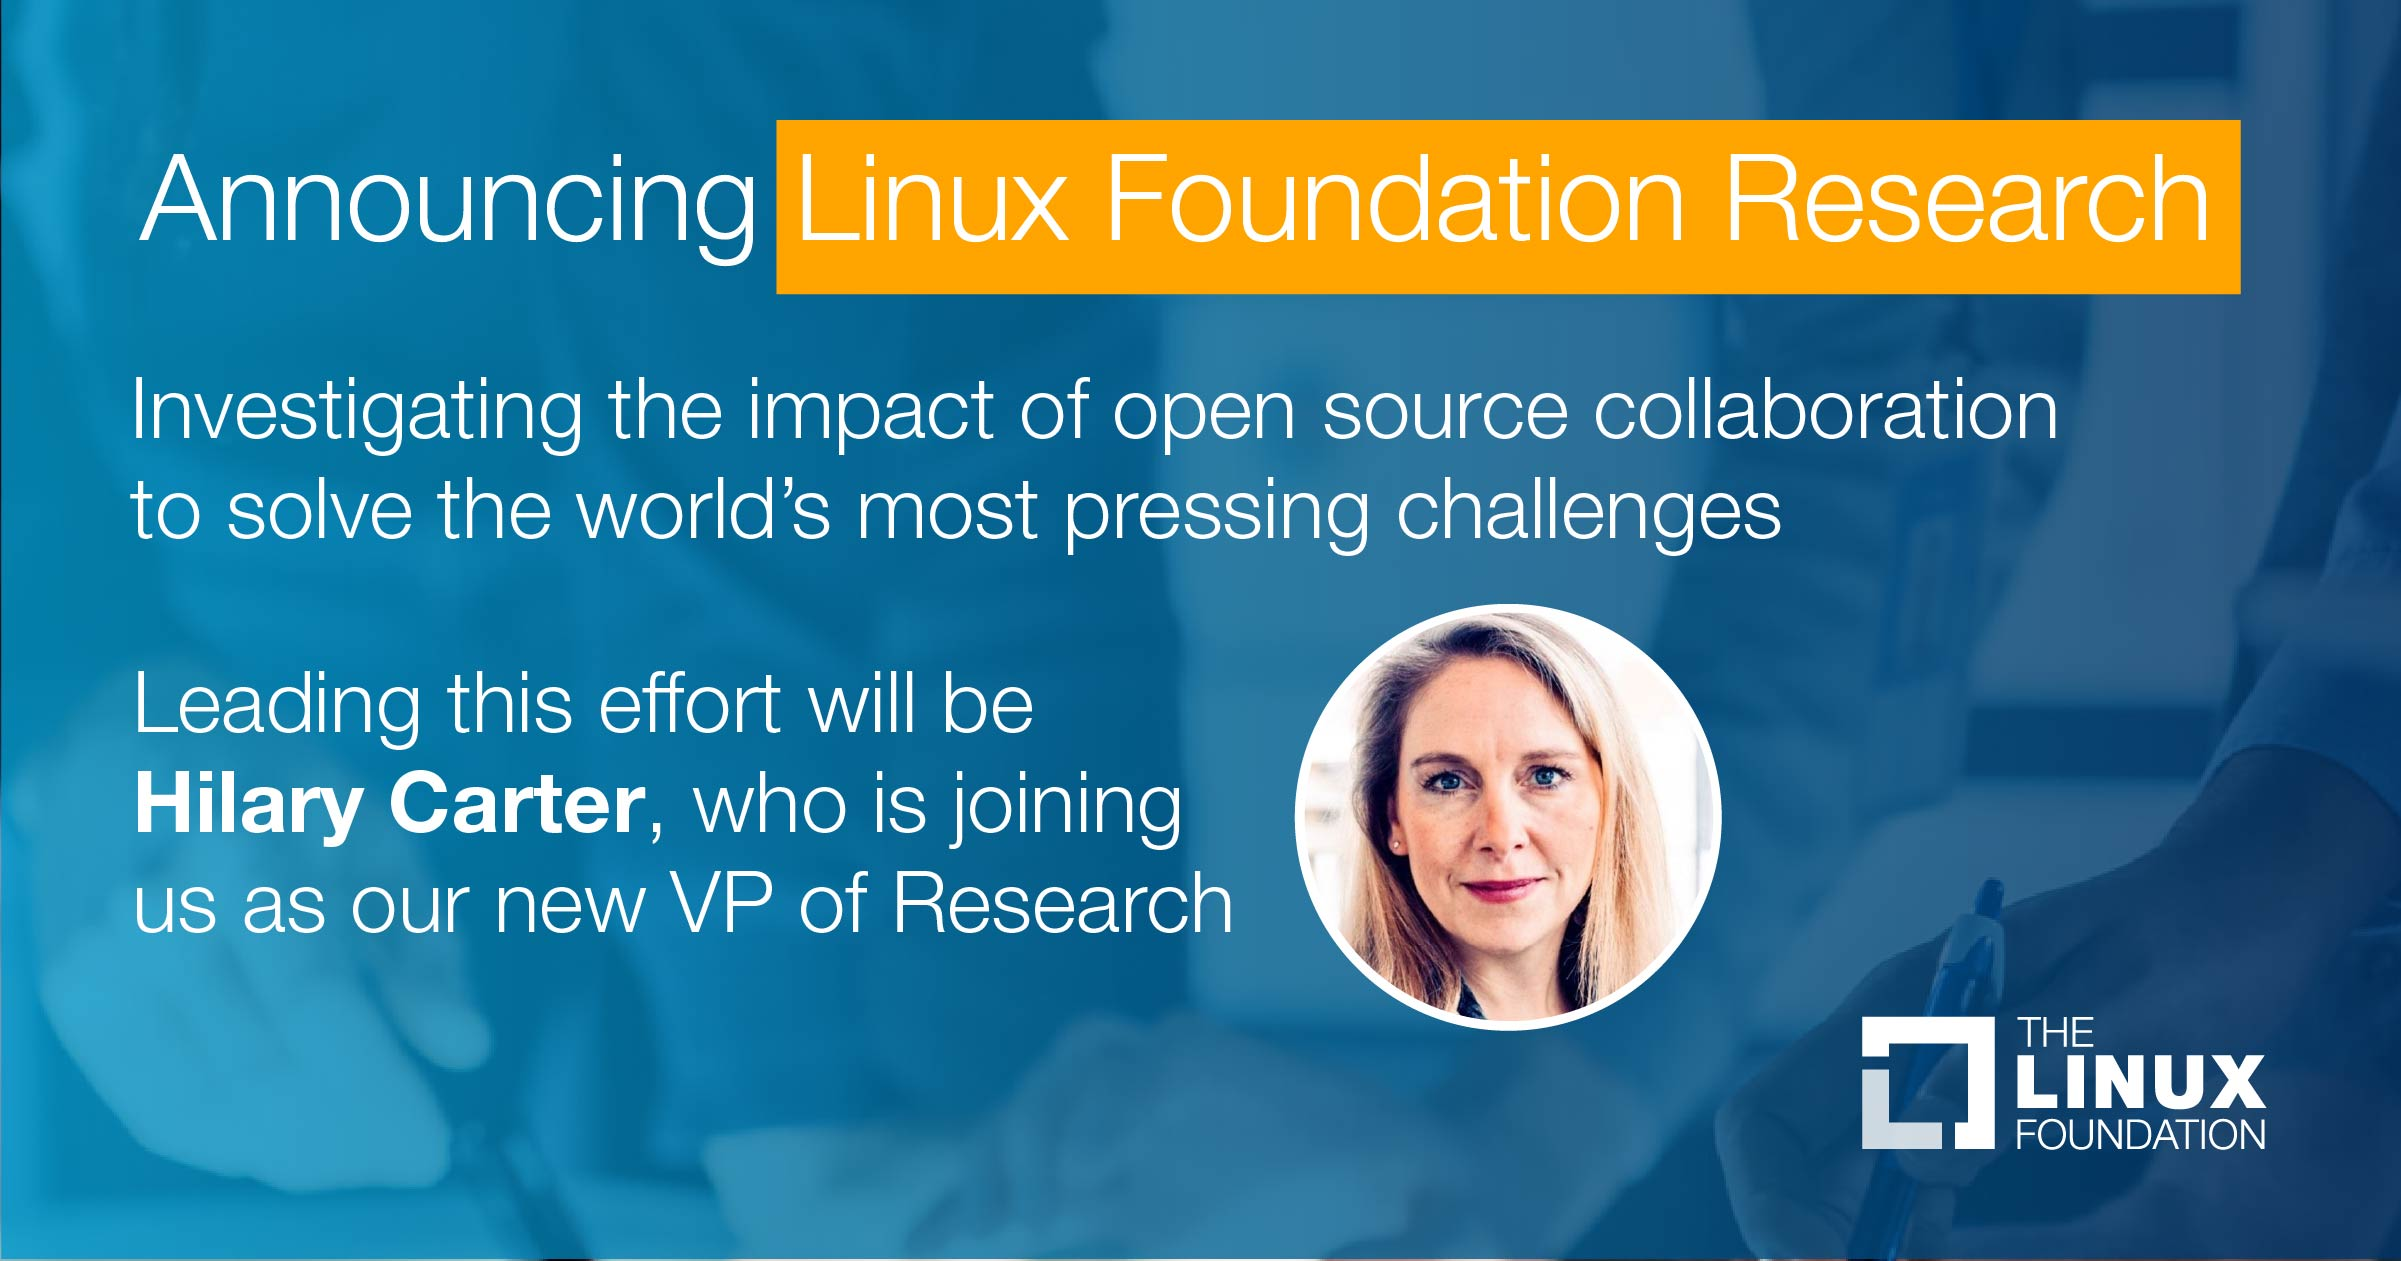 The Linux Foundation launches research division to explore open source ecosystems and impact - Linux Foundation